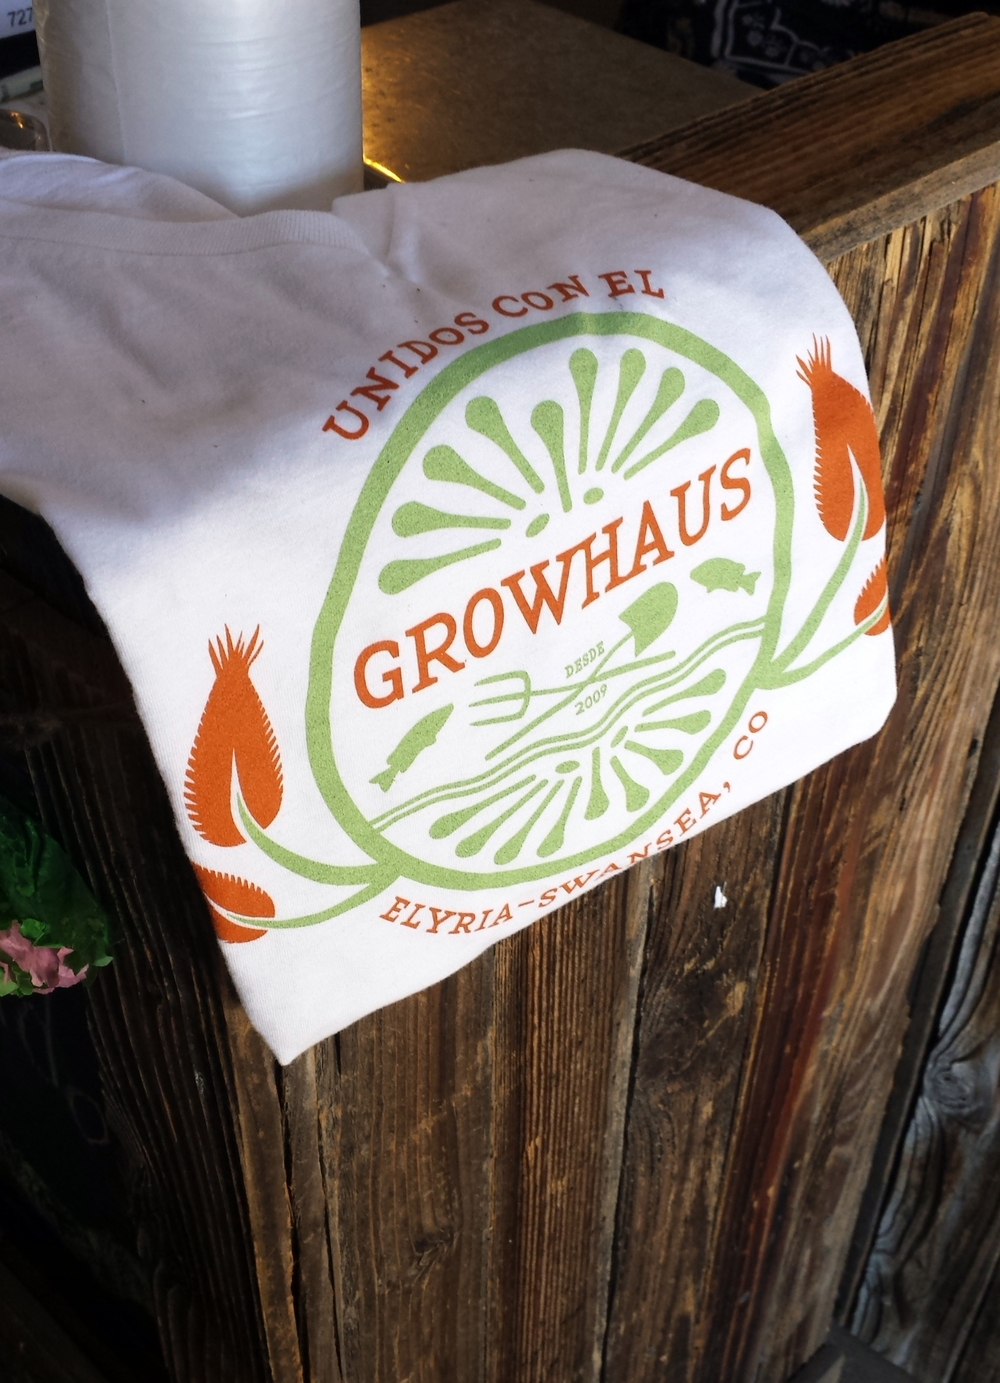 The GrowHaus, an urban greenhouse in Denver